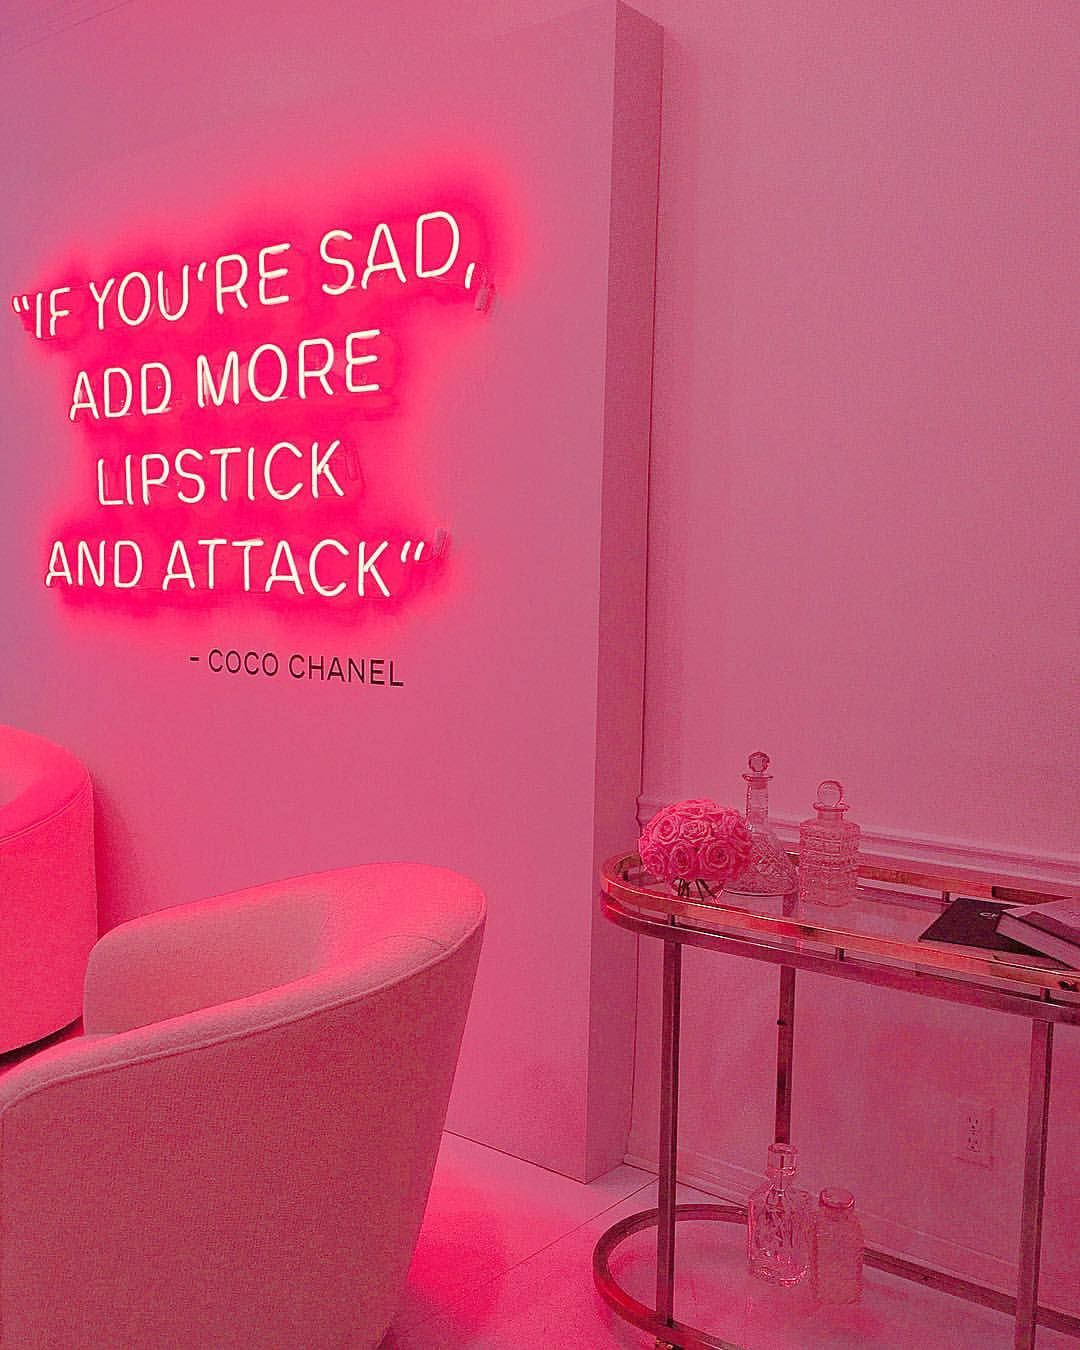 CHANEL | #WeloveCoco | Hot Pink | Pink light installation | Motivational quote | Pink